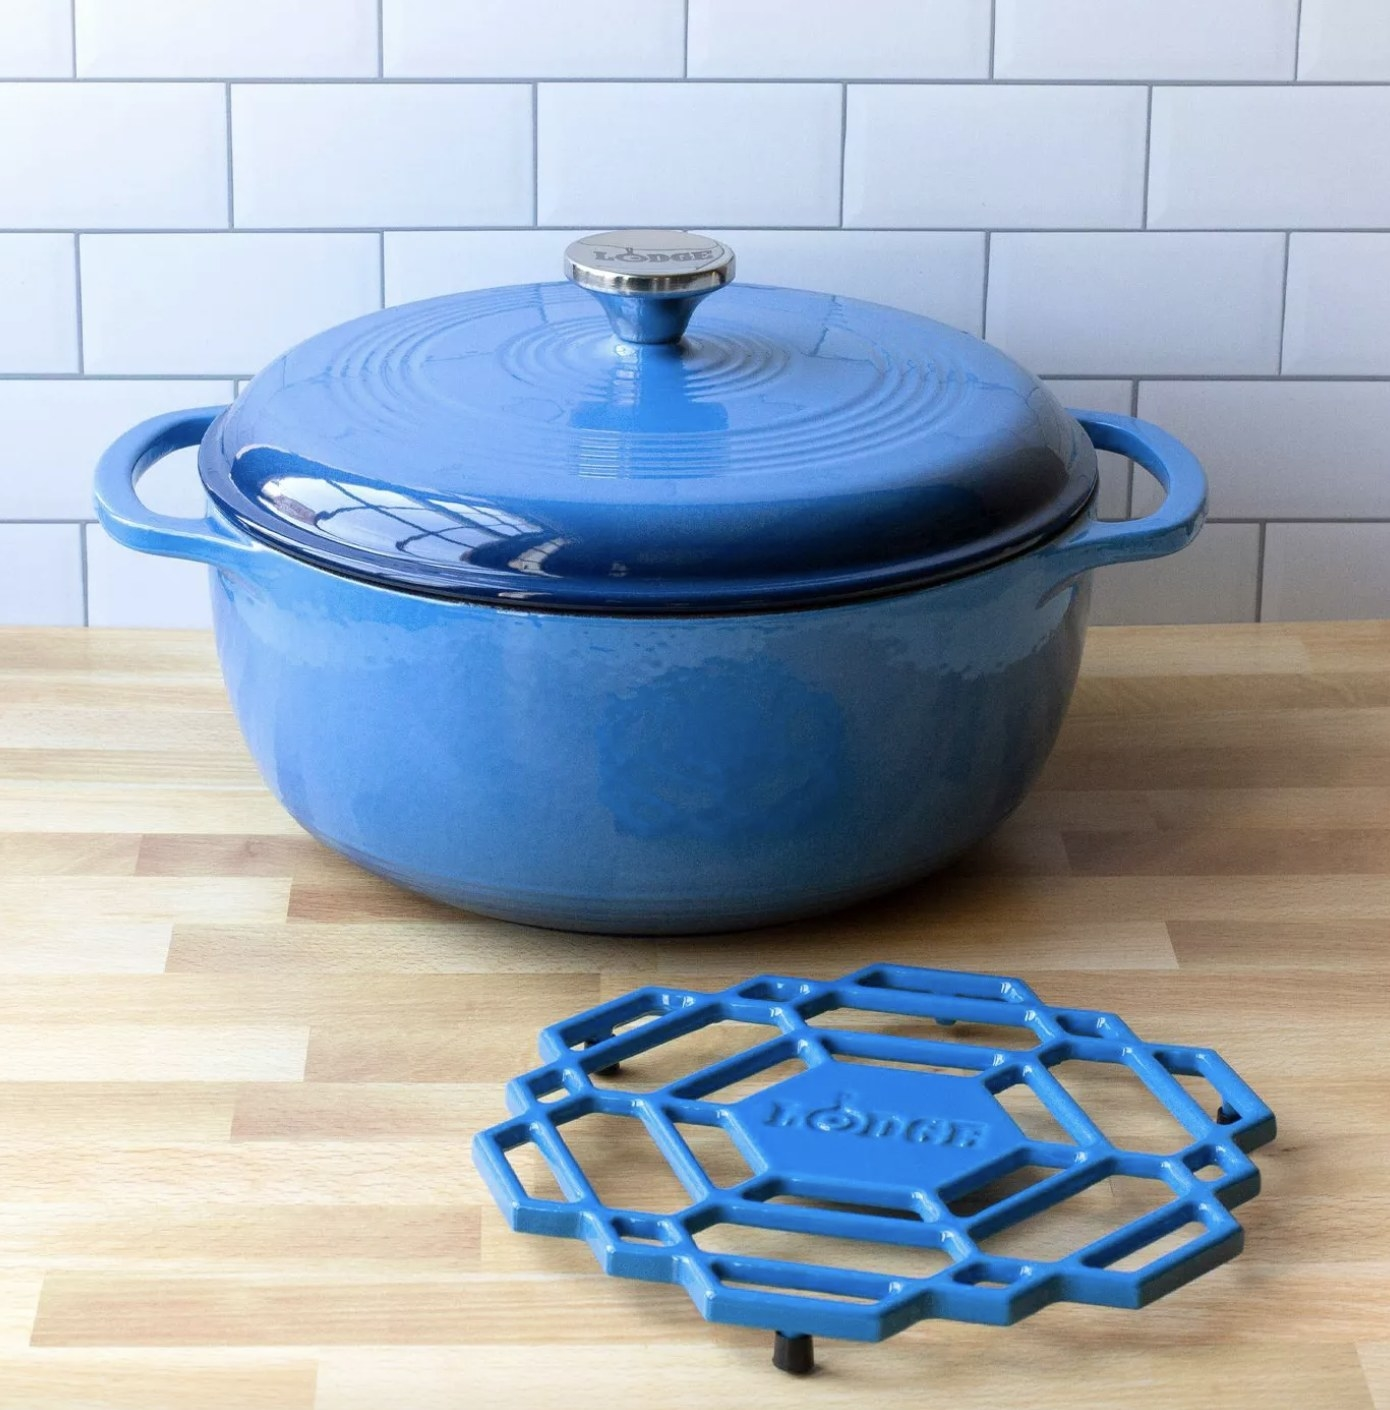 the dutch oven in blue